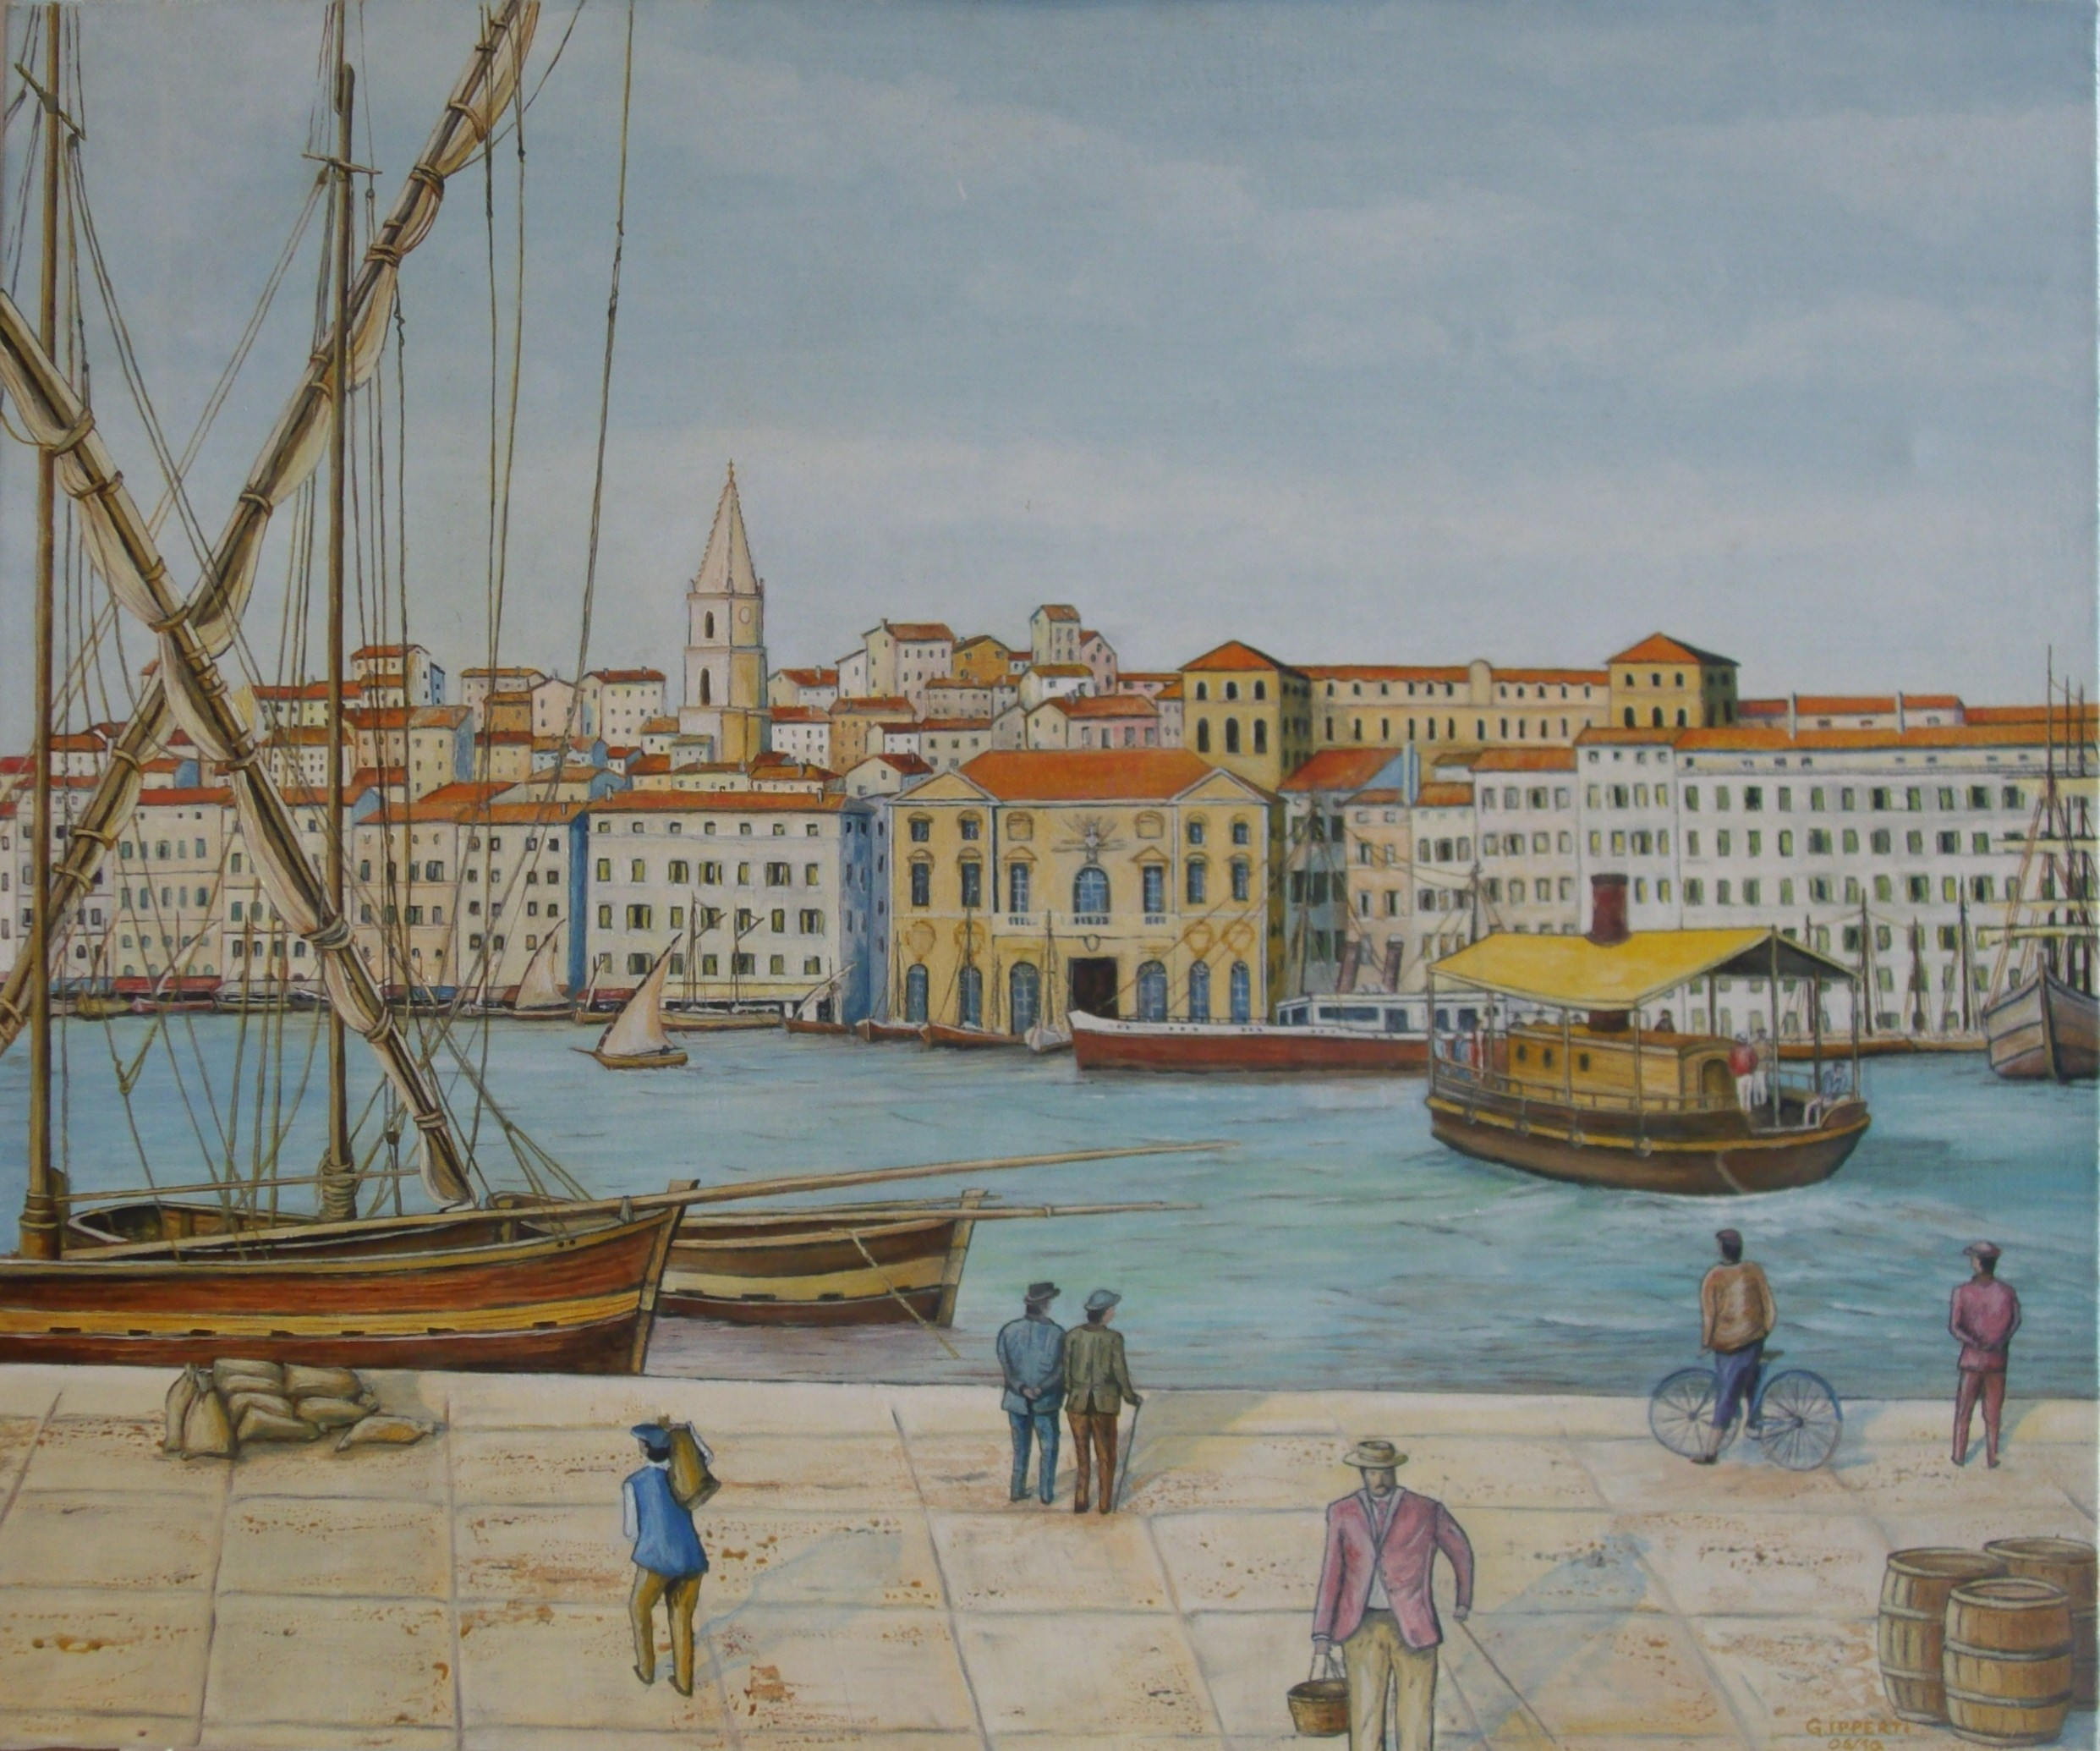 Mairie Ferry Boat Marseille